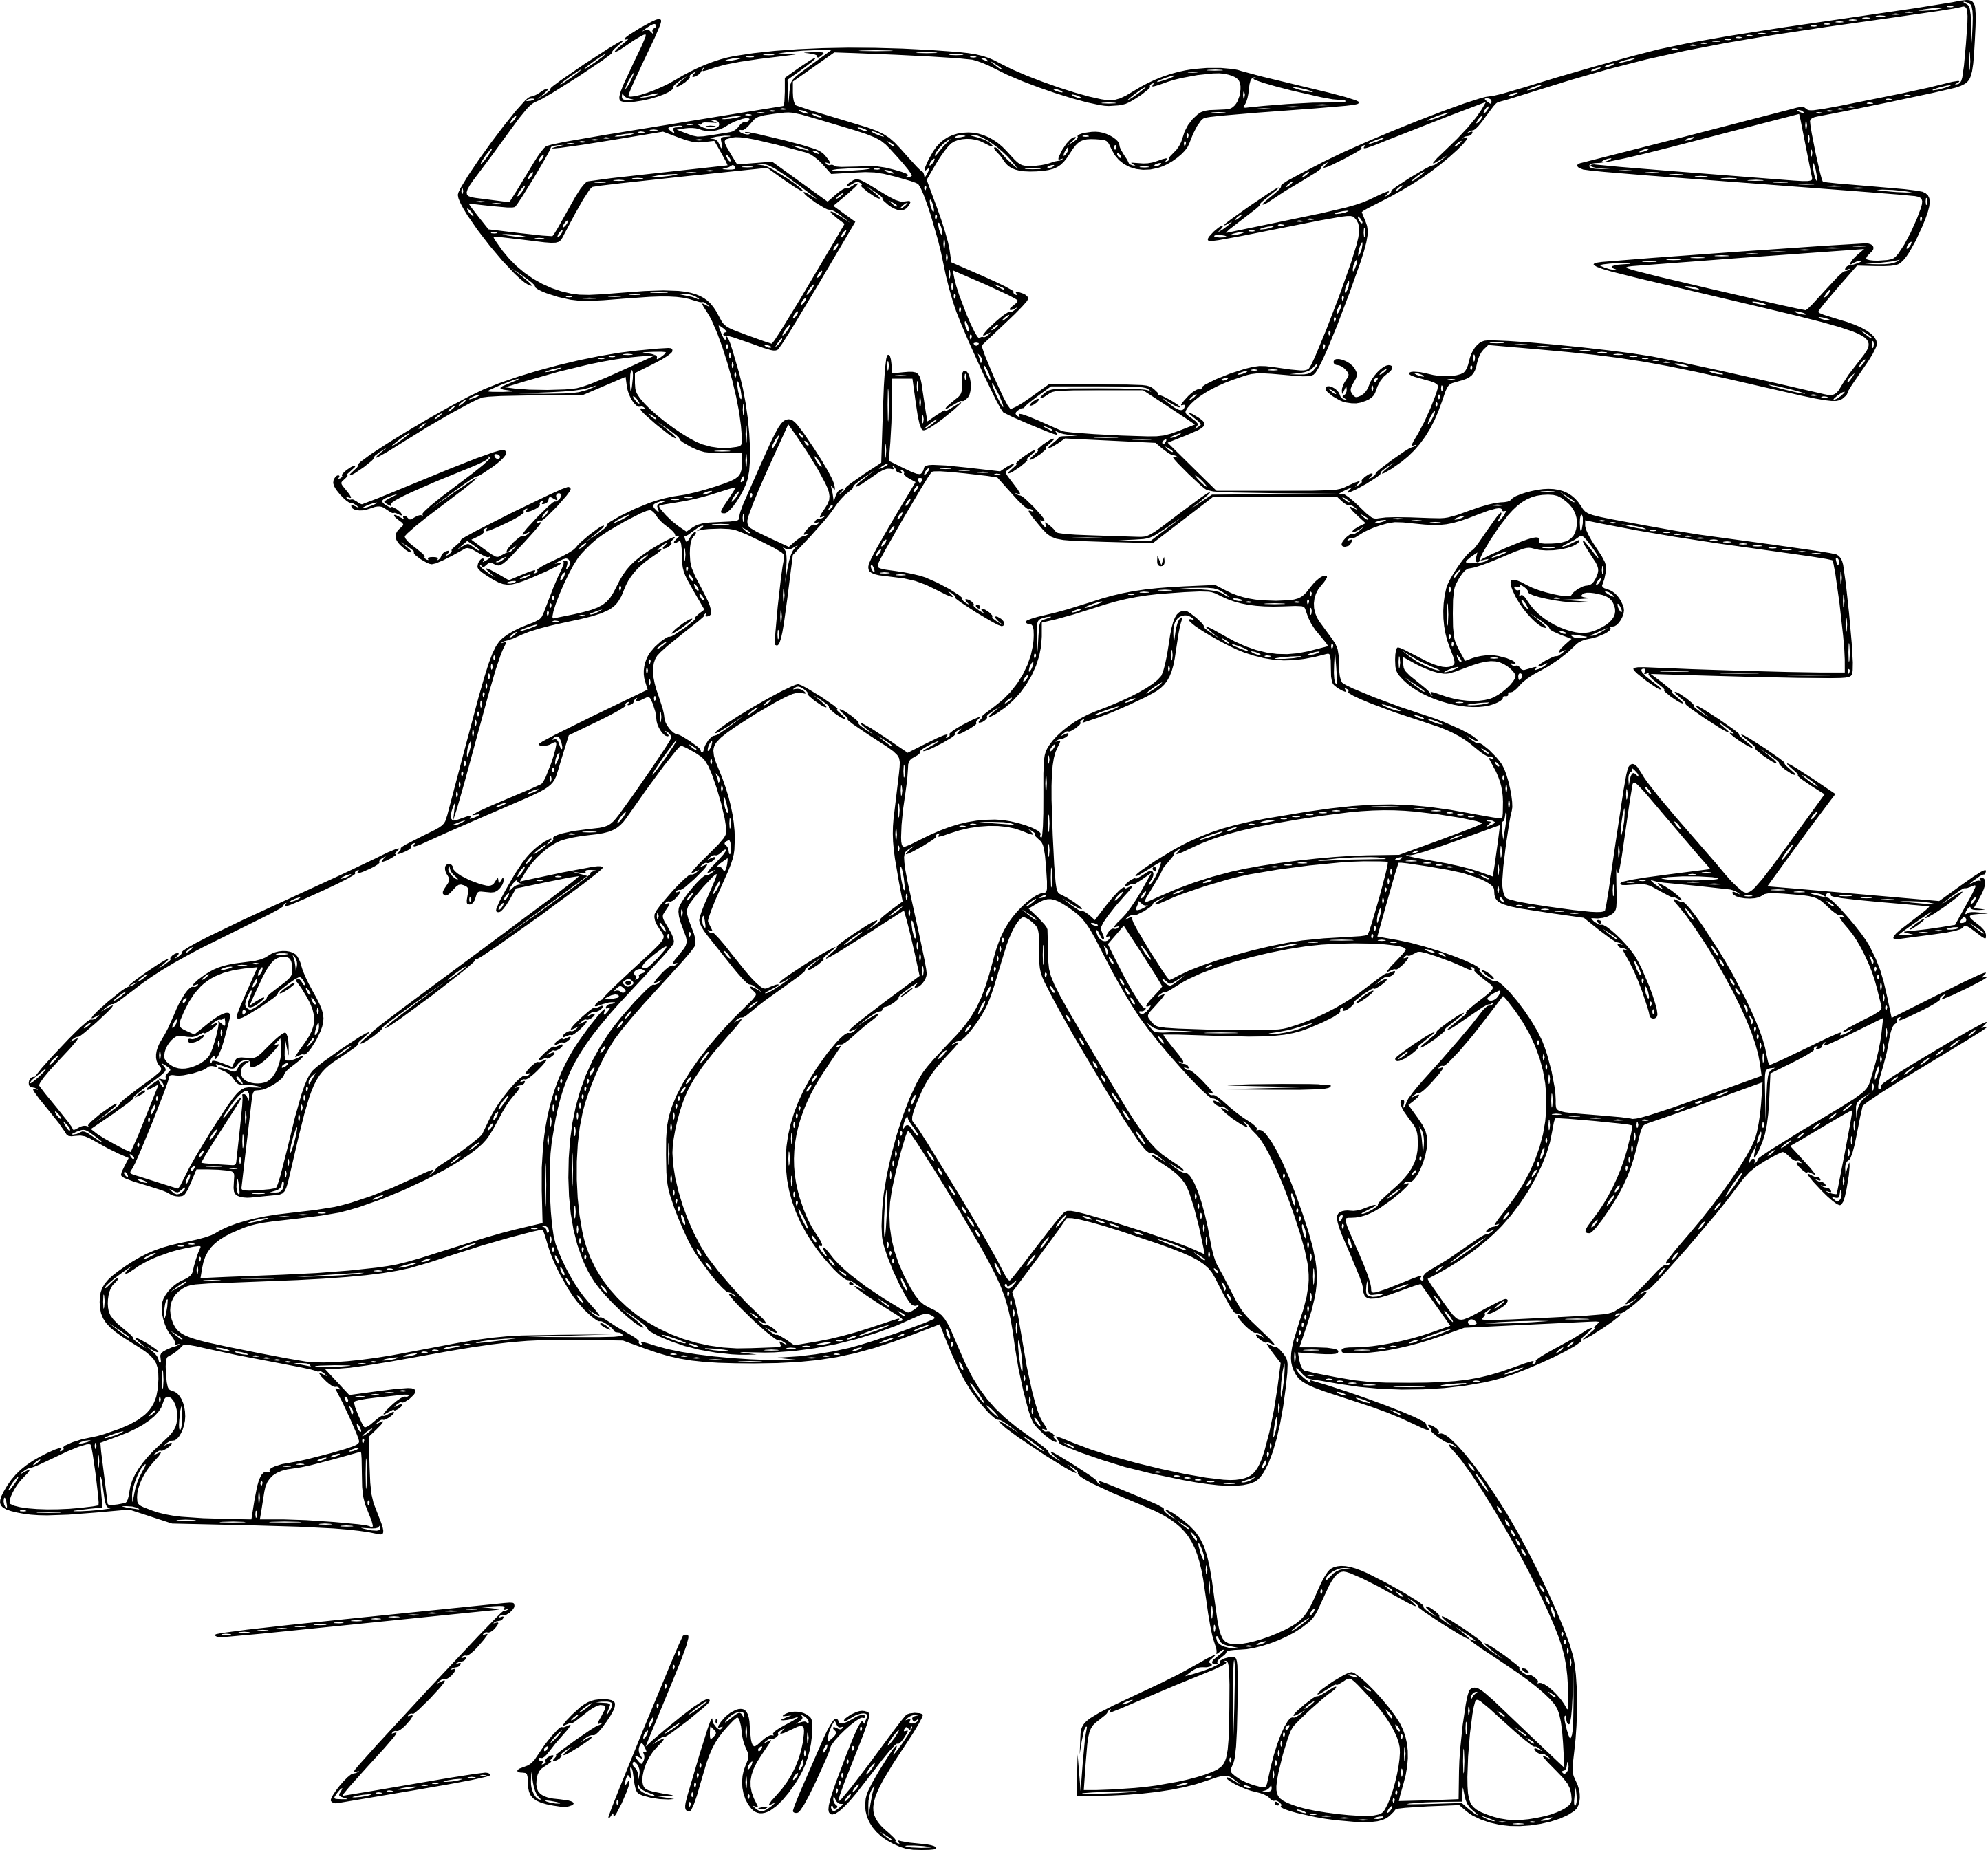 Dessin de carte pokemon ex a imprimer - Coloriage carte pokemon ...